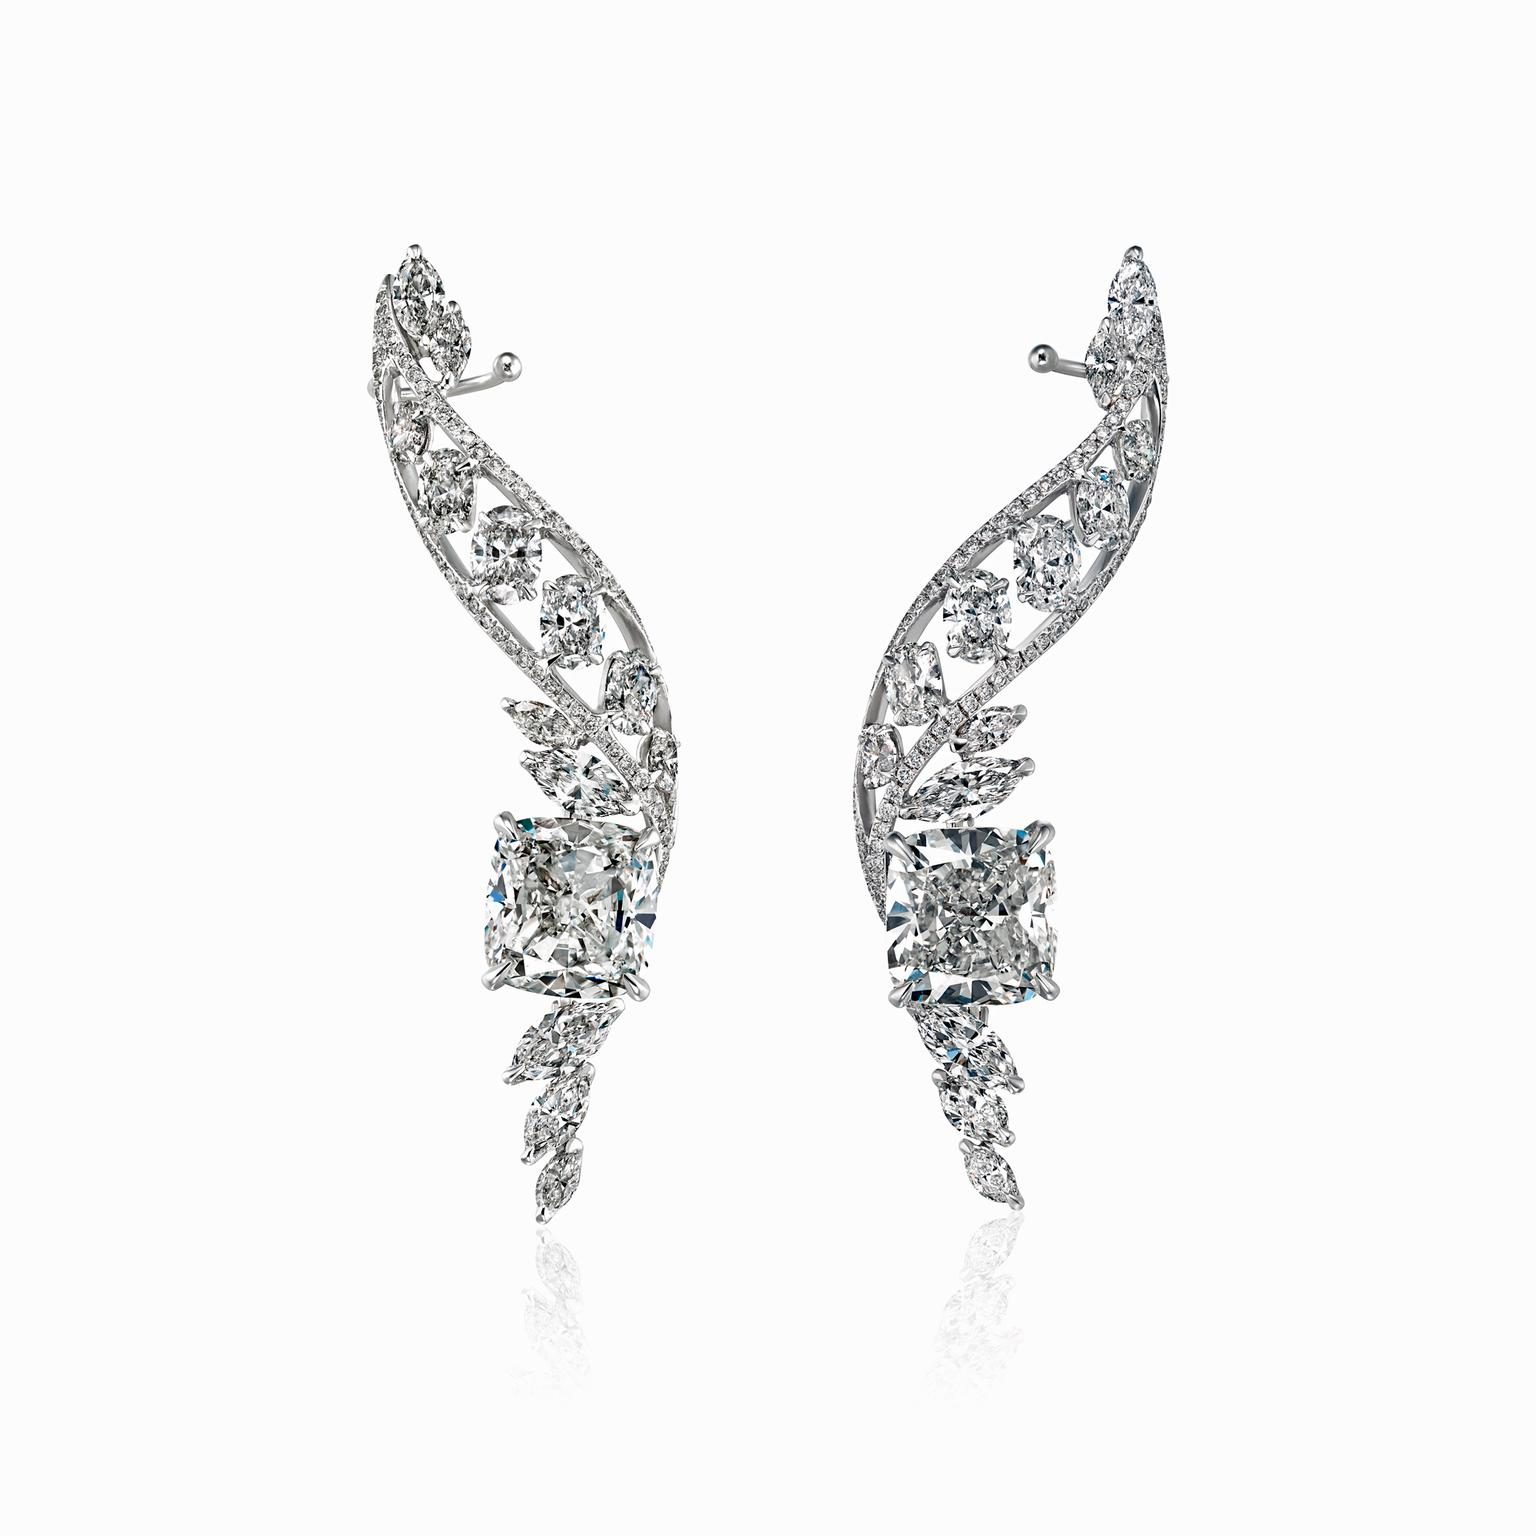 Boghossian diamond earrings